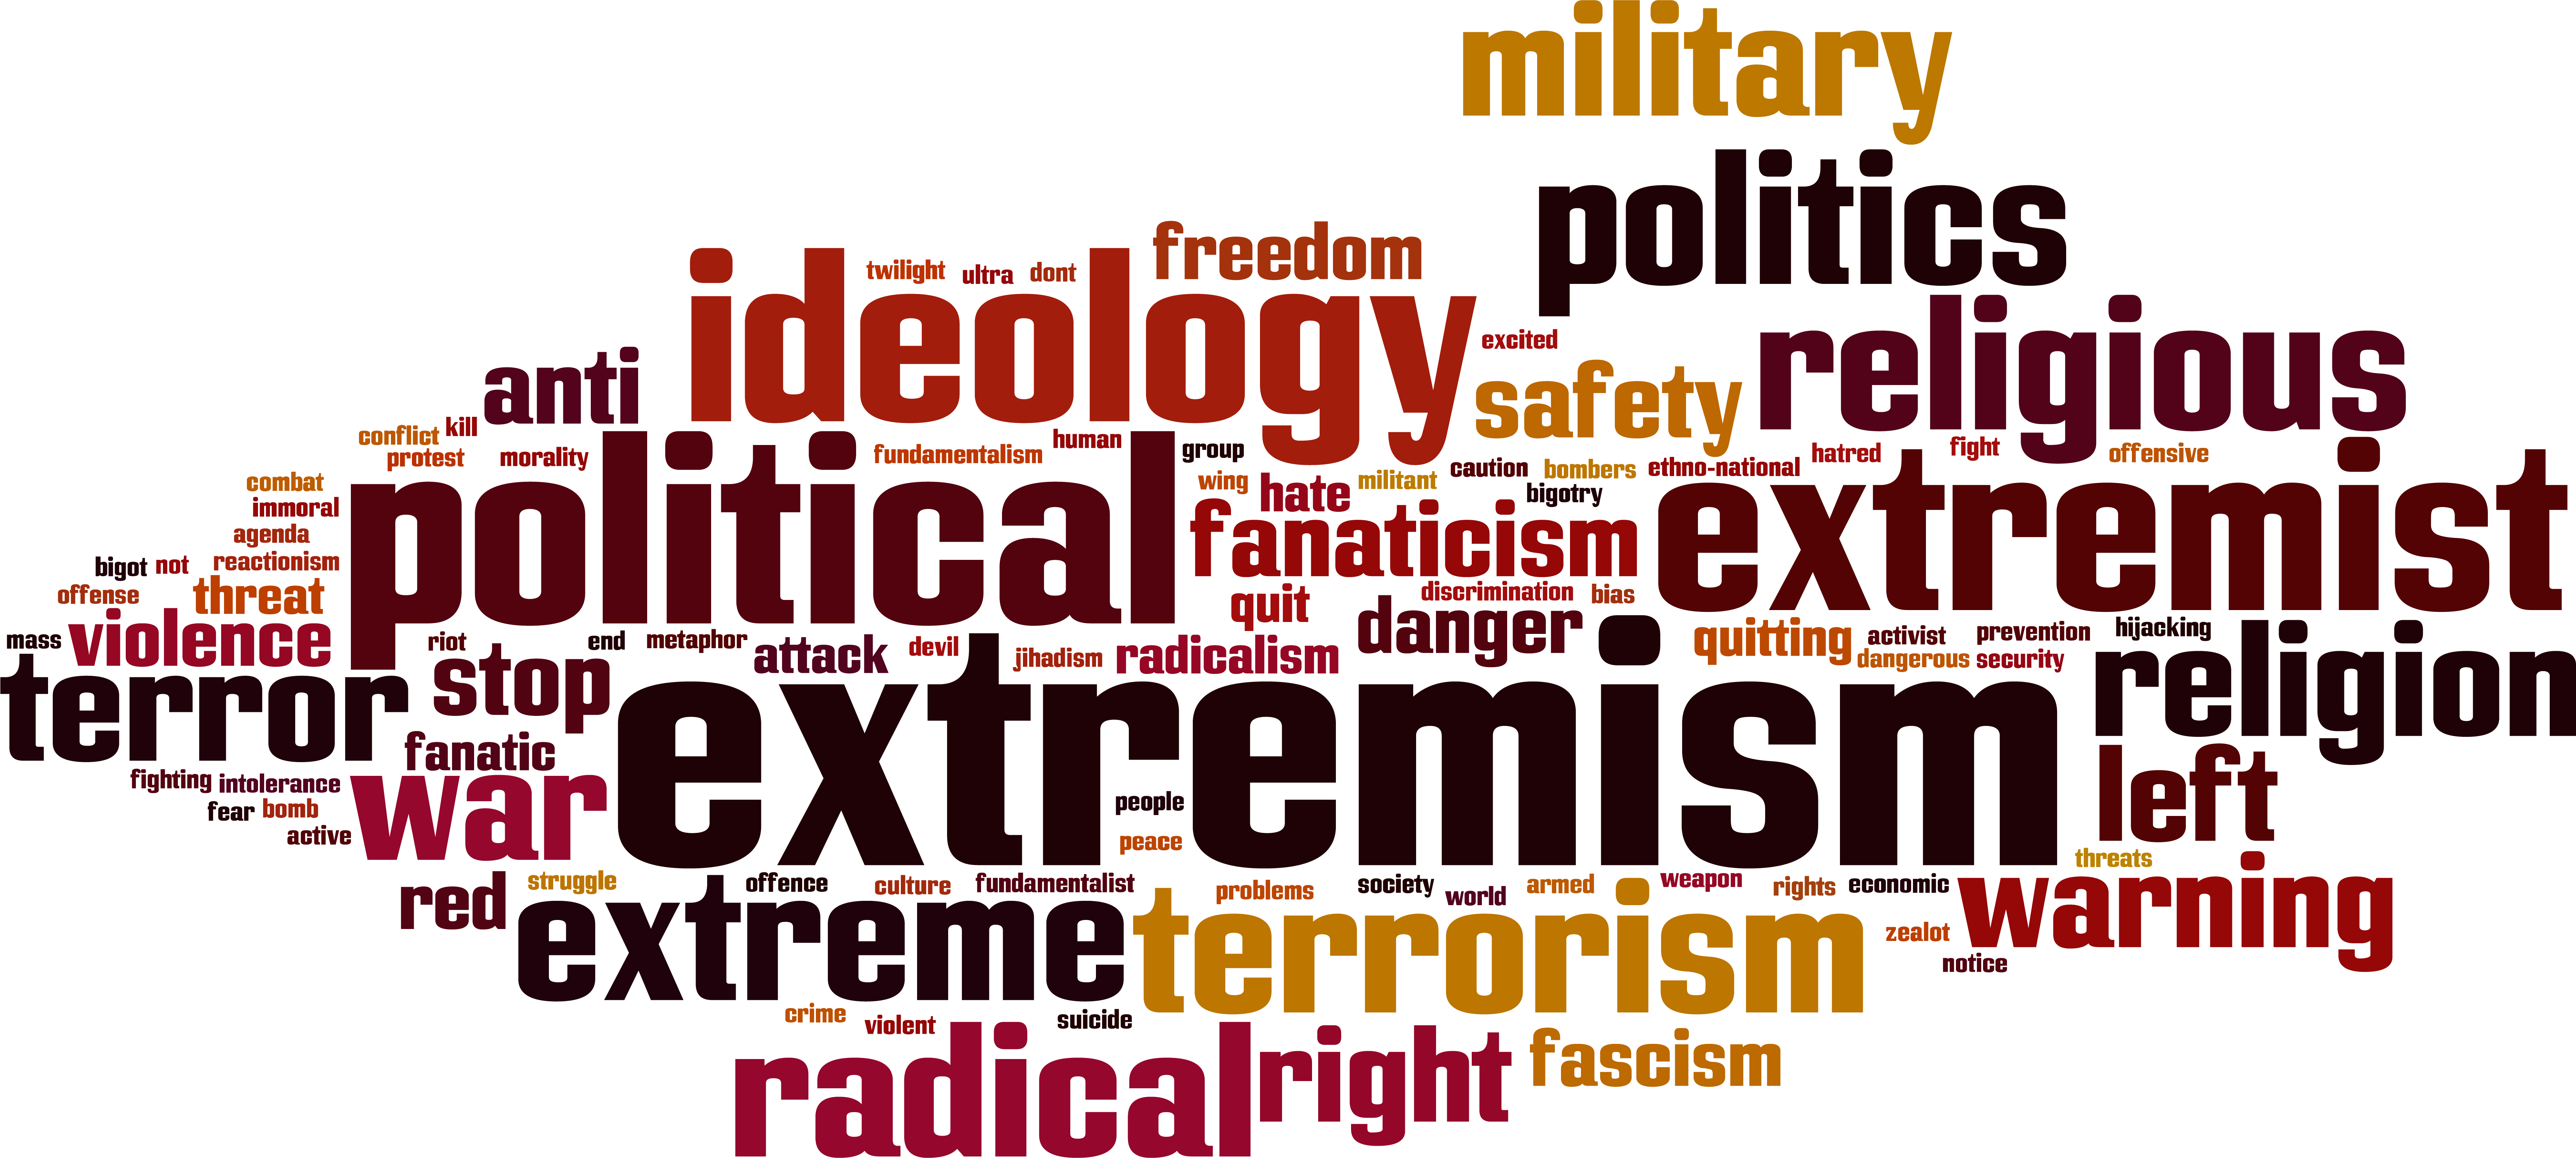 sociological concepts and the rise of extremism Background currently, terrorism and suicide bombing are global psychosocial   across the fields of law, medicine, psychology, sociology and politics  war in  syria, and the rise of the islamic state in iraq and the levant (isil)  terrorism,  extremism, radicalisation and ideas conveyed by those concepts.